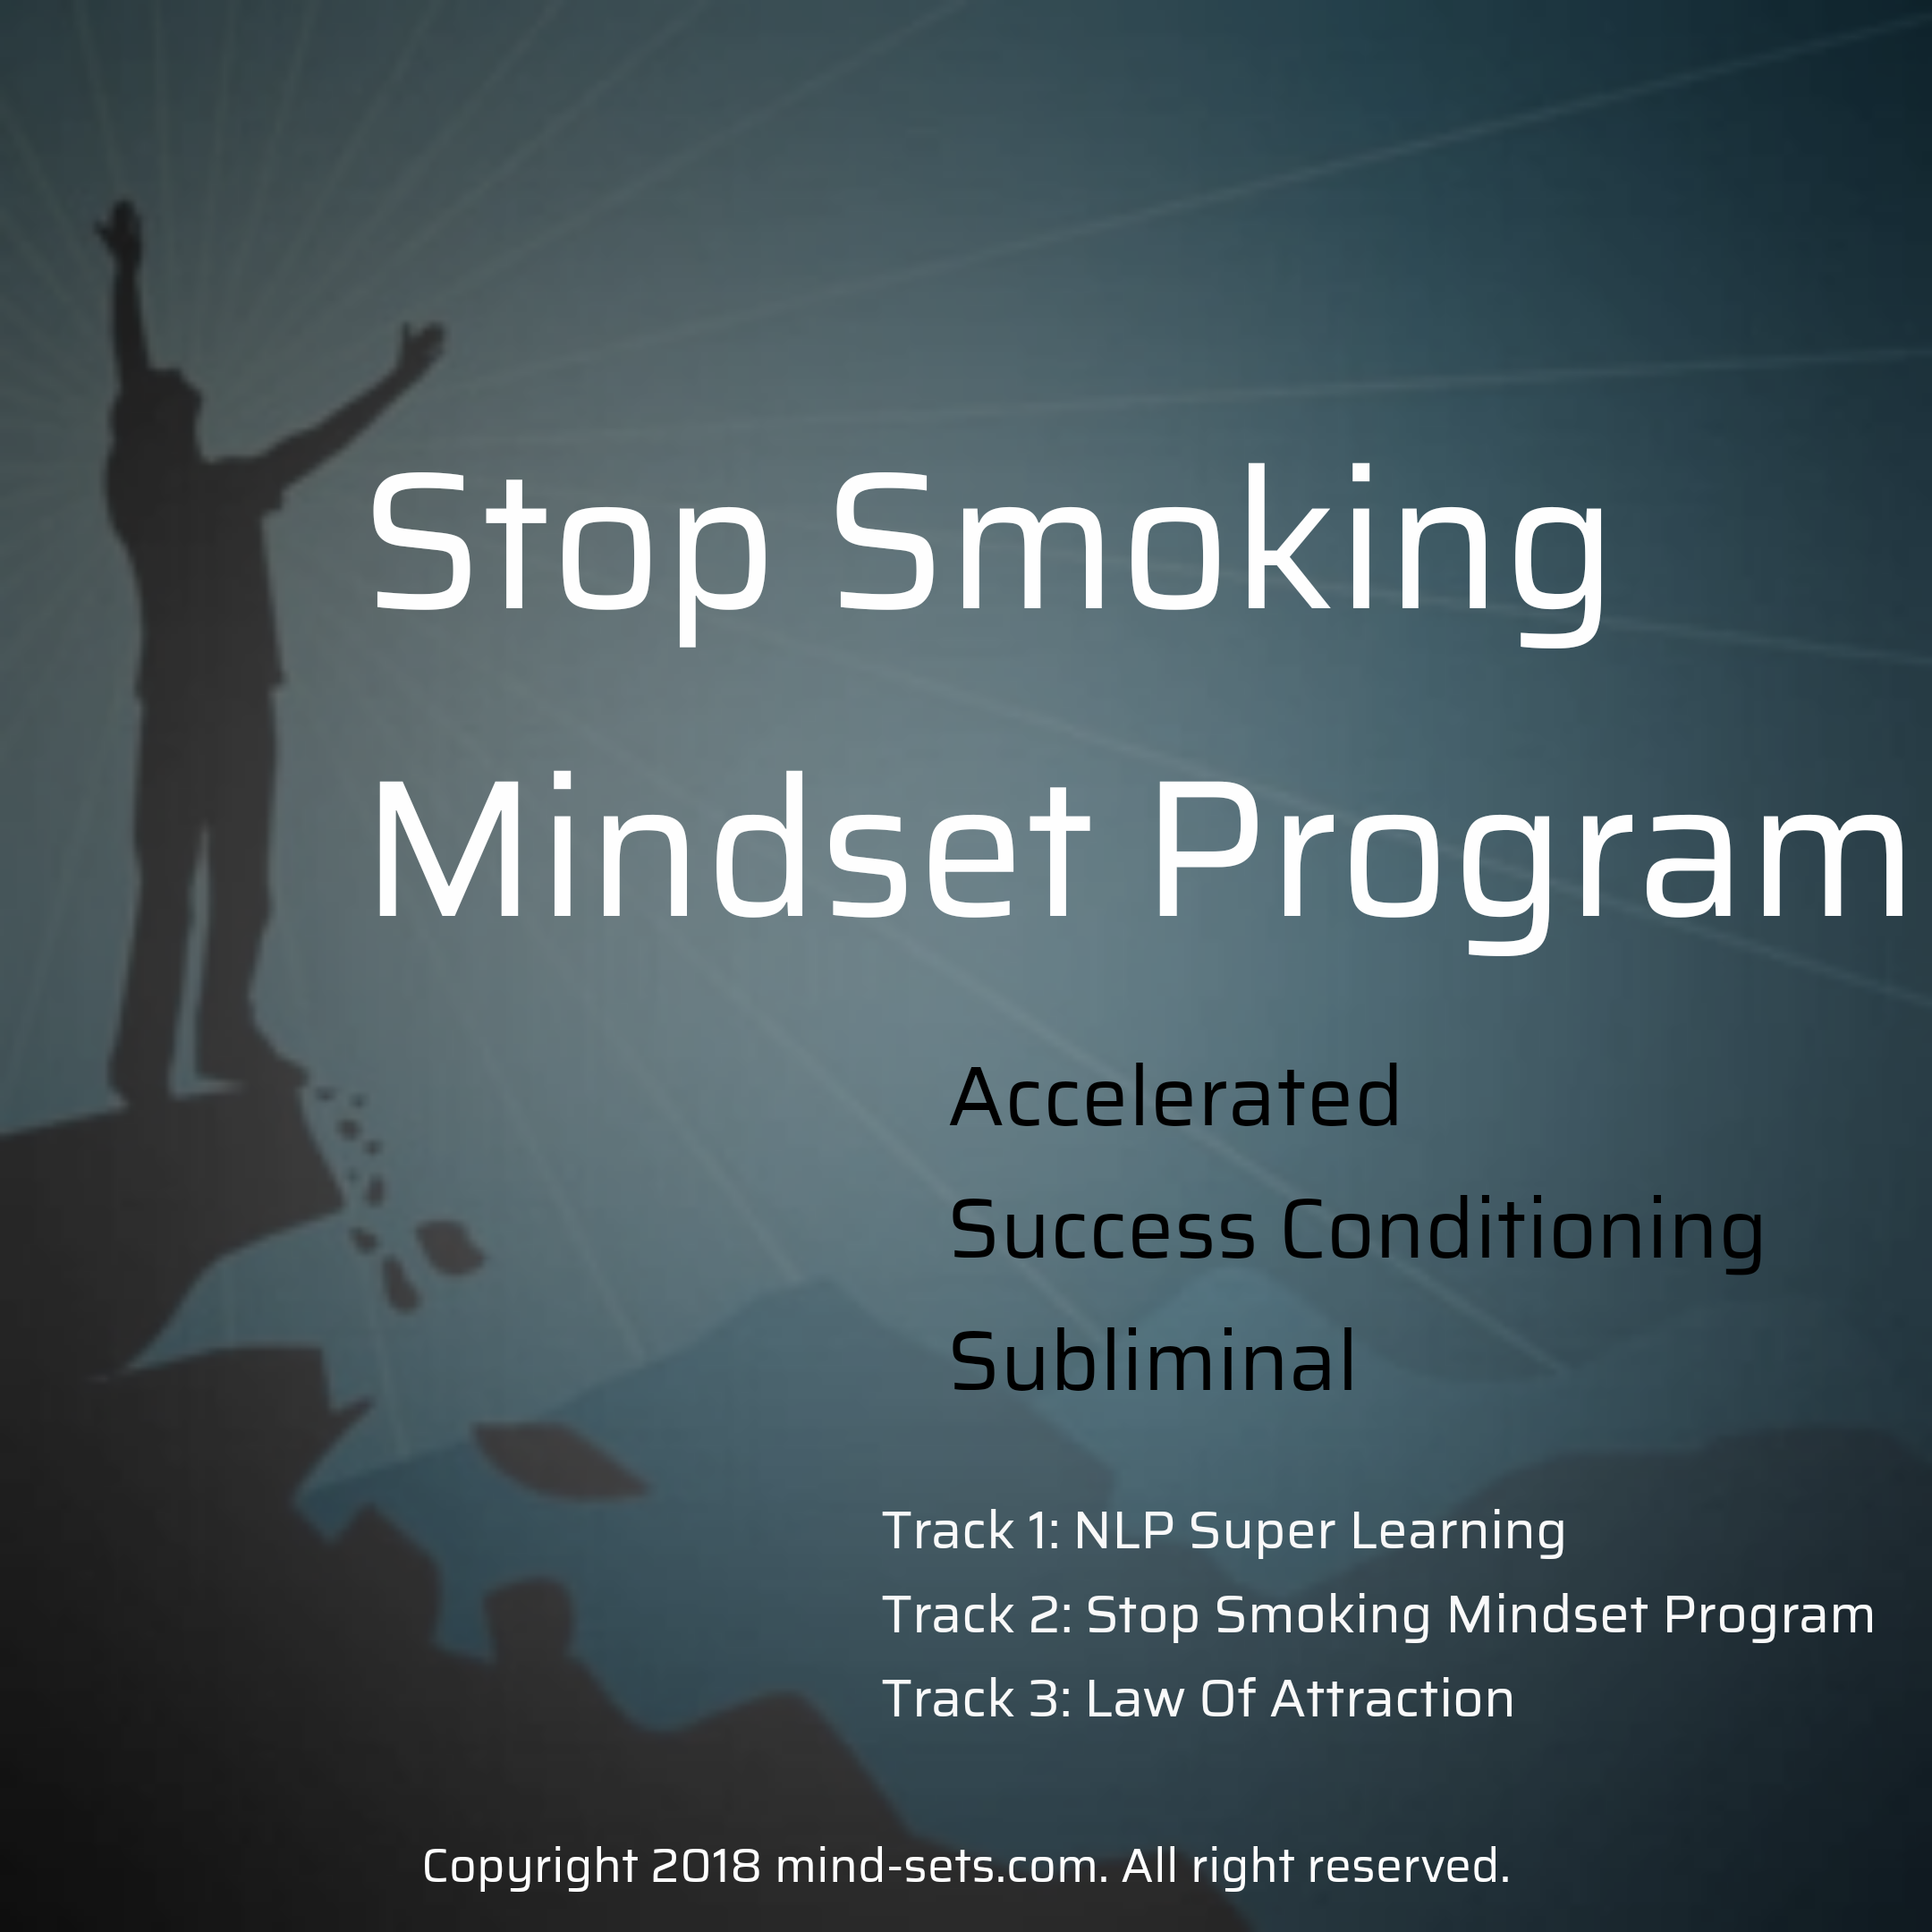 Stop Smoking Mindset Program